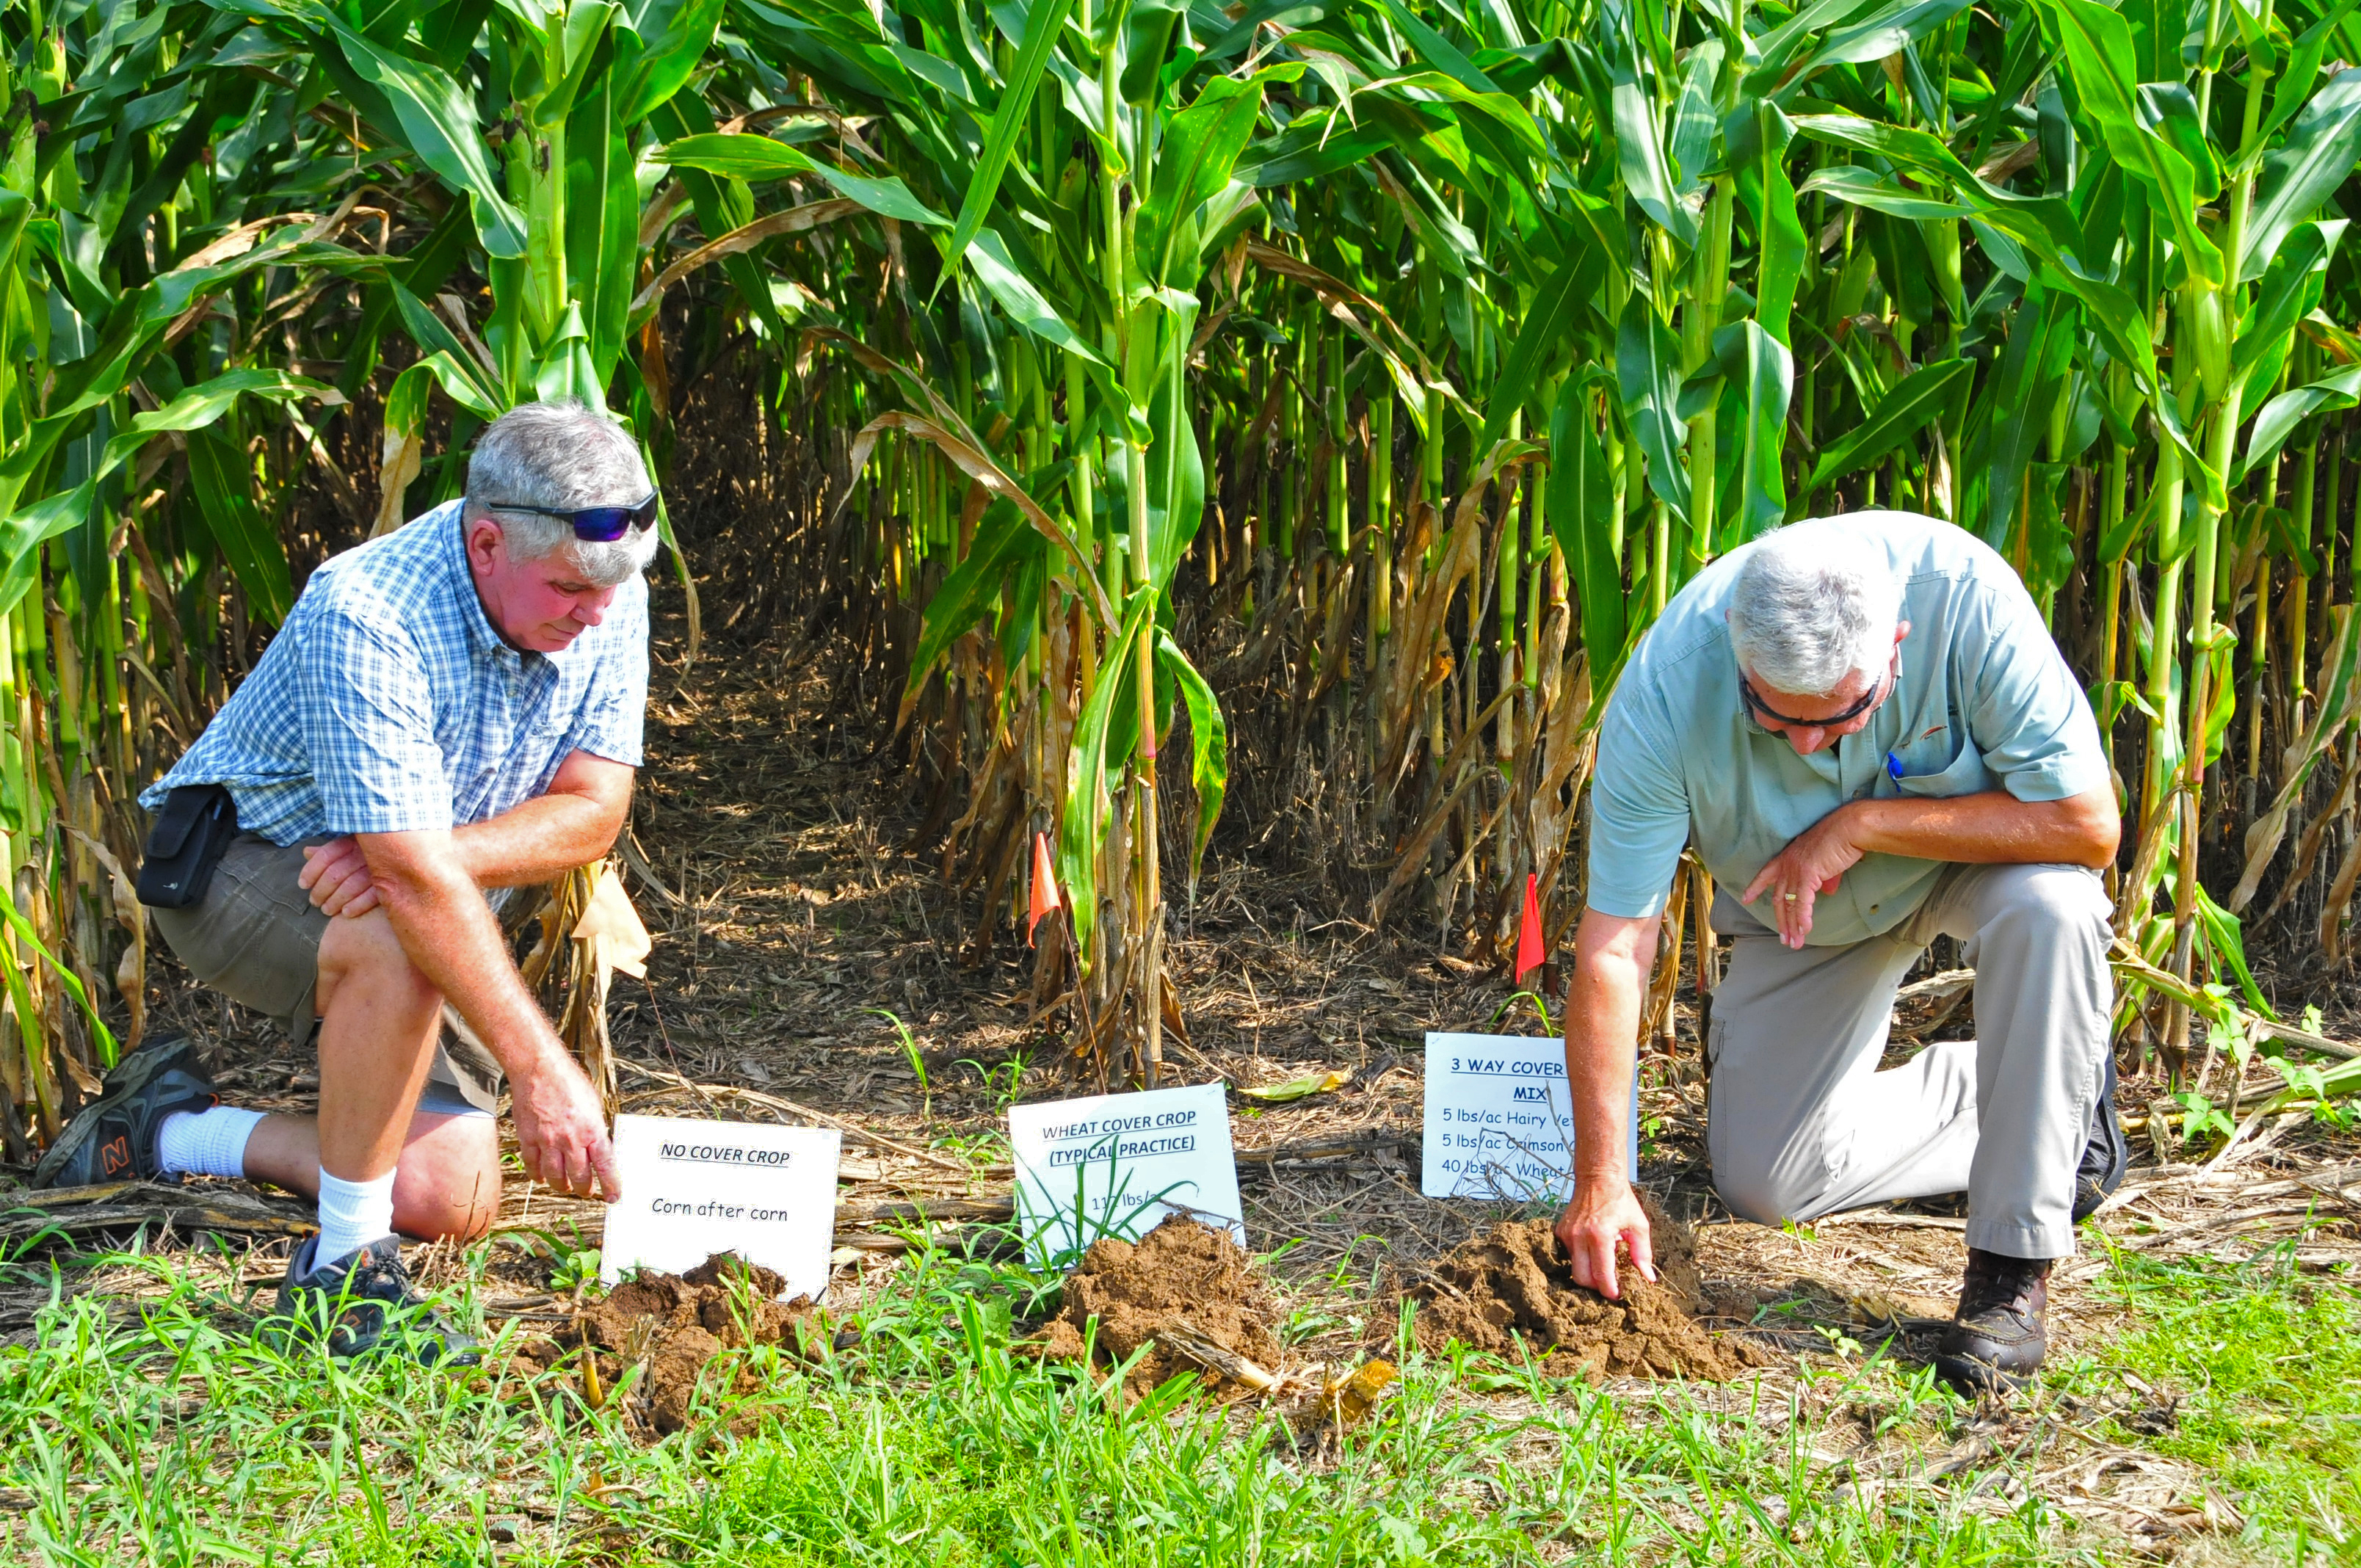 Lewis Smith's soil health trial consists of three segments of corn growth, with one area having no cover crop, the second portion having a single cover crop, and the third section having a three-way cover crop mix.